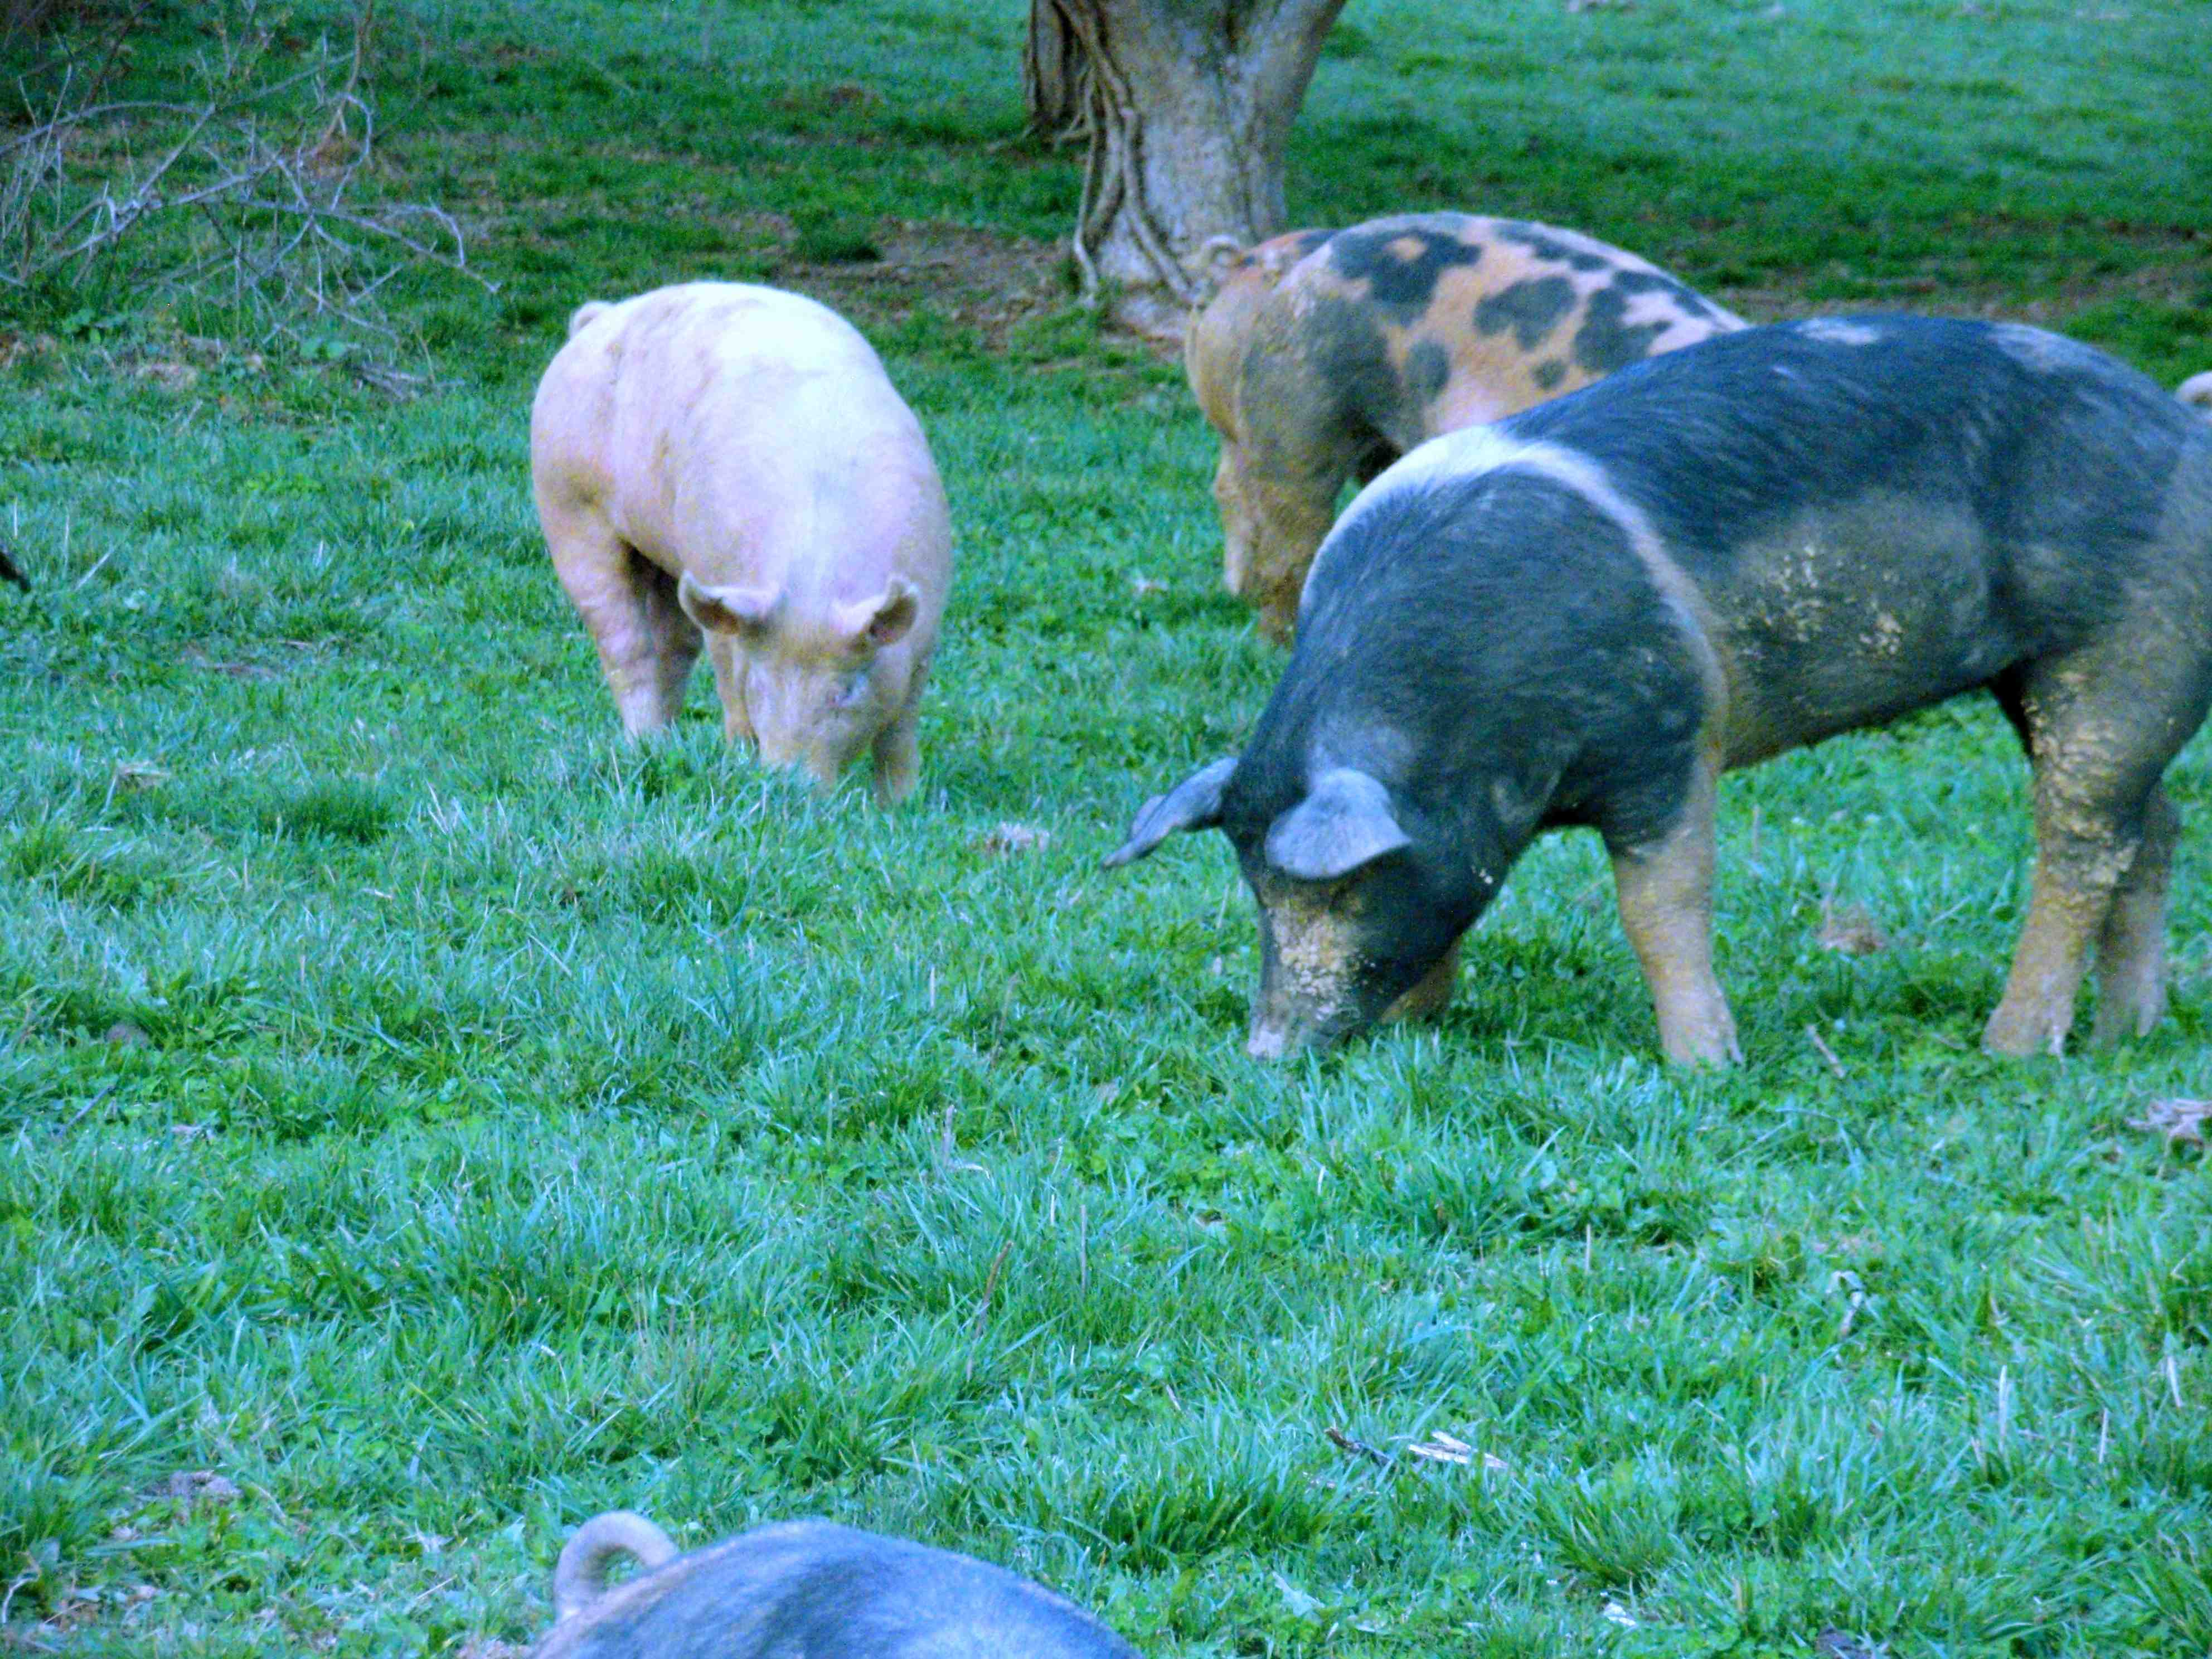 We try to take our cues from nature.  Pigs are perfectly suited for our farm, where grazing, foraging and gleaning opportunities present themselves nearly year-round.